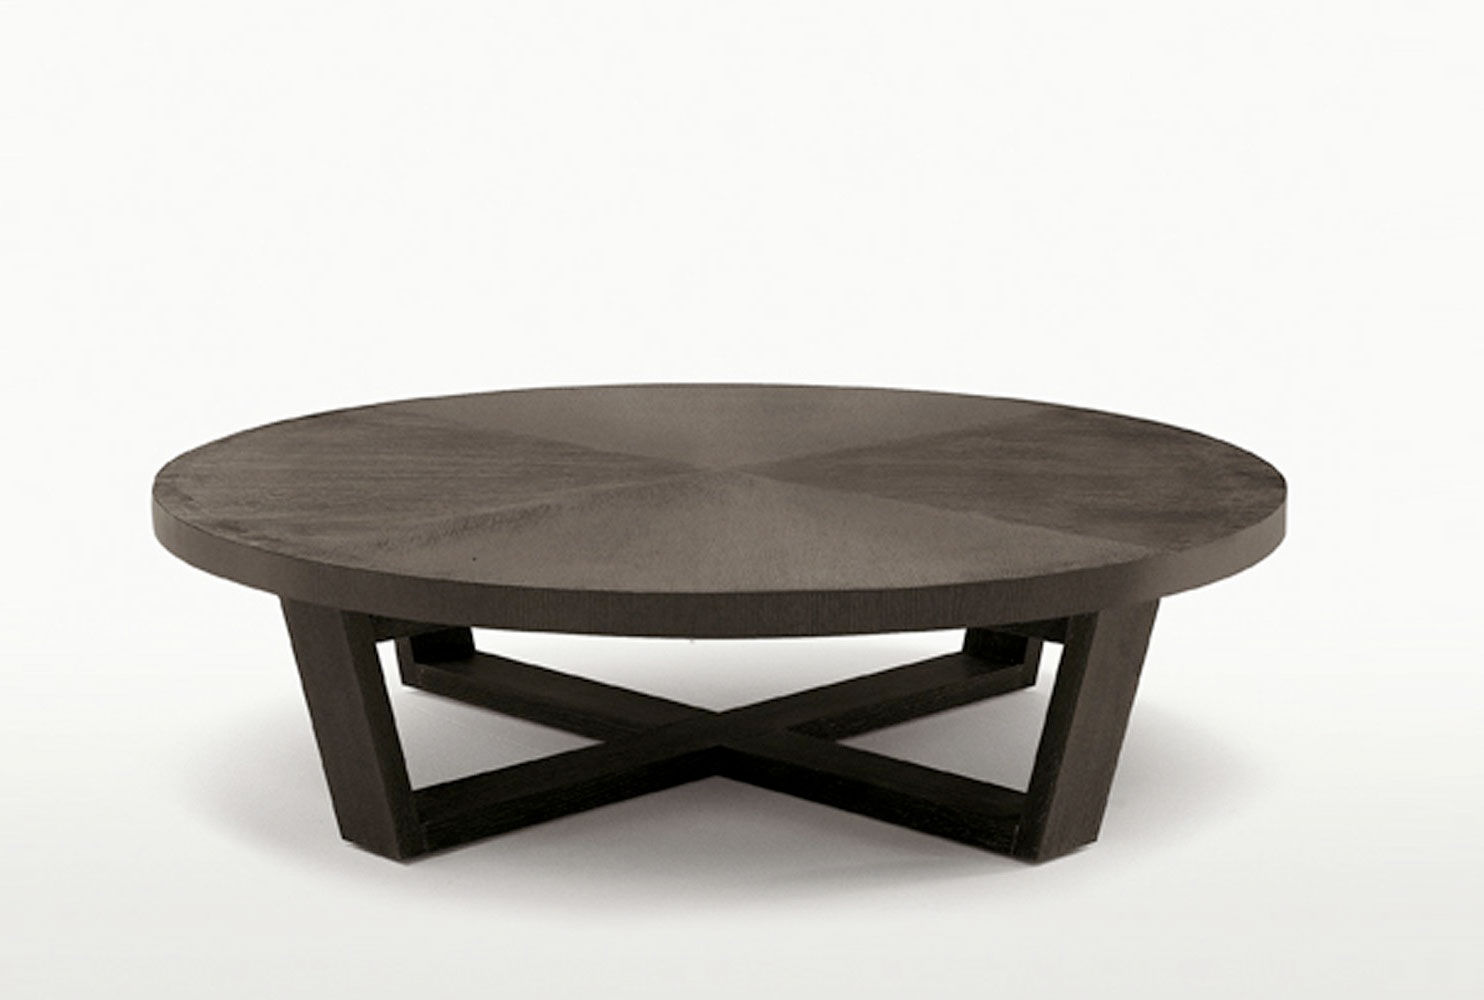 contemporary coffee table  wooden  rectangular  round xilos maxalto. contemporary coffee table  wooden  rectangular  round  xilos